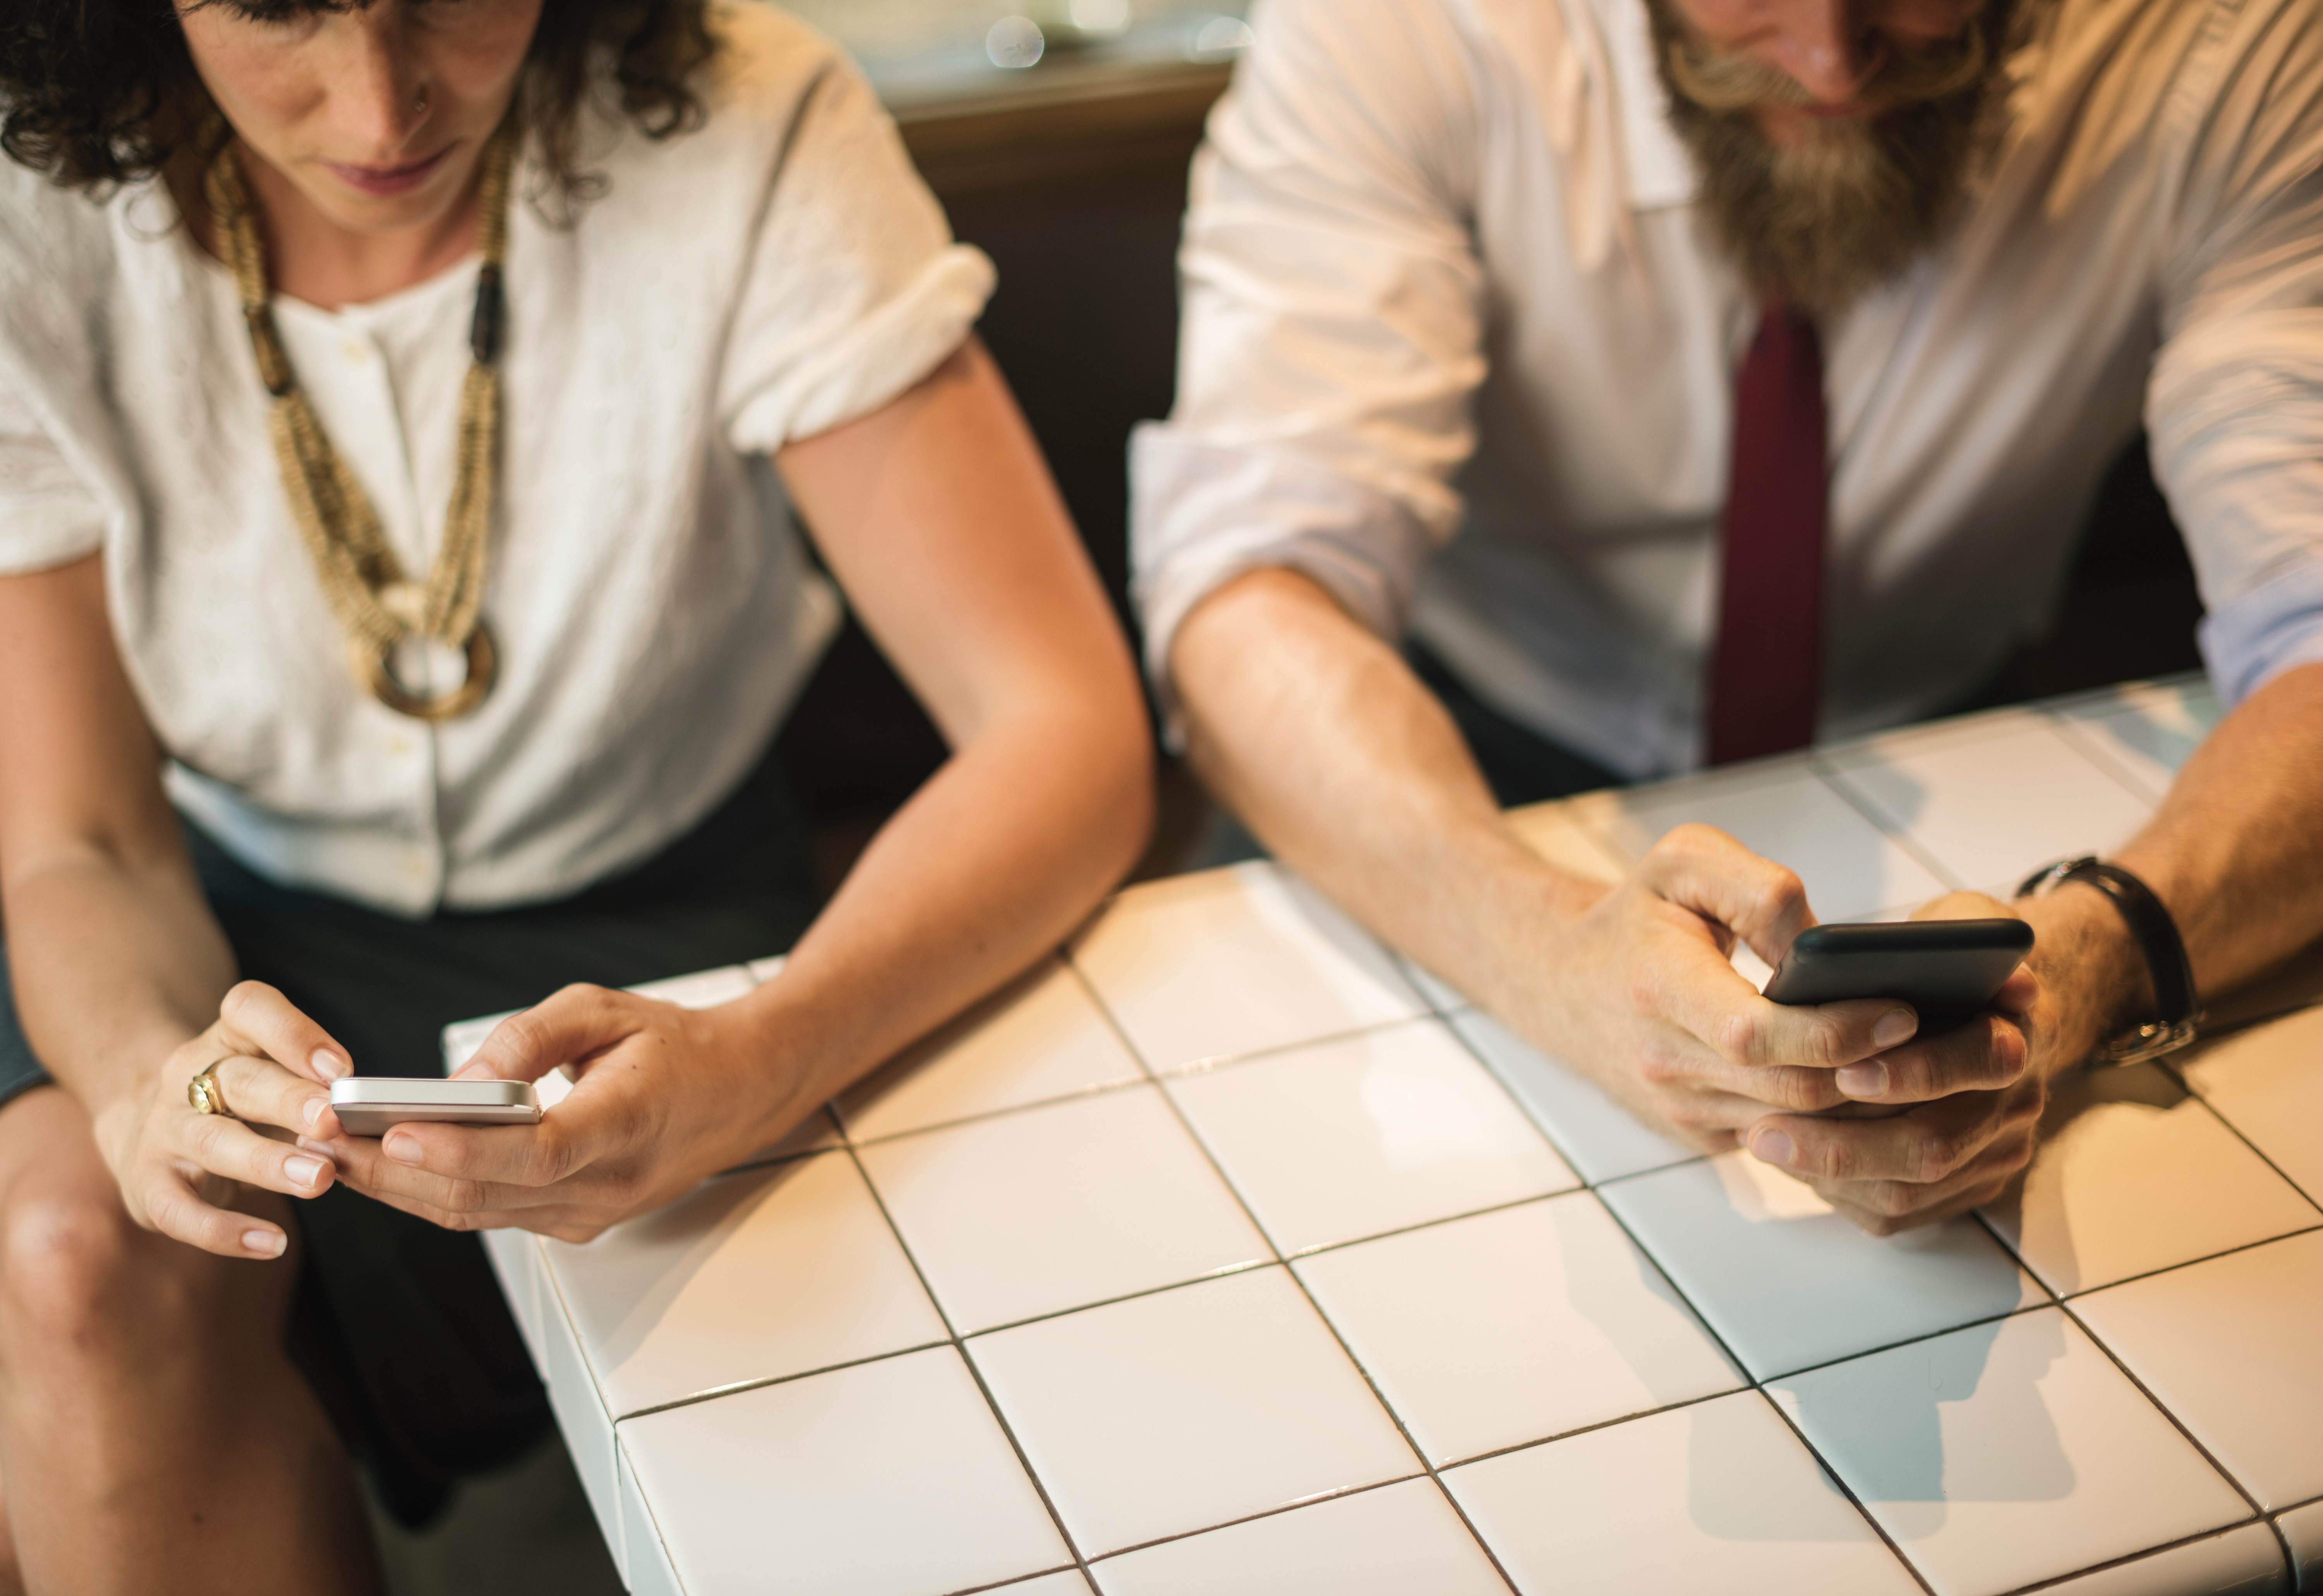 A man and a woman sitting next to each other at a table looking at their smartphones.